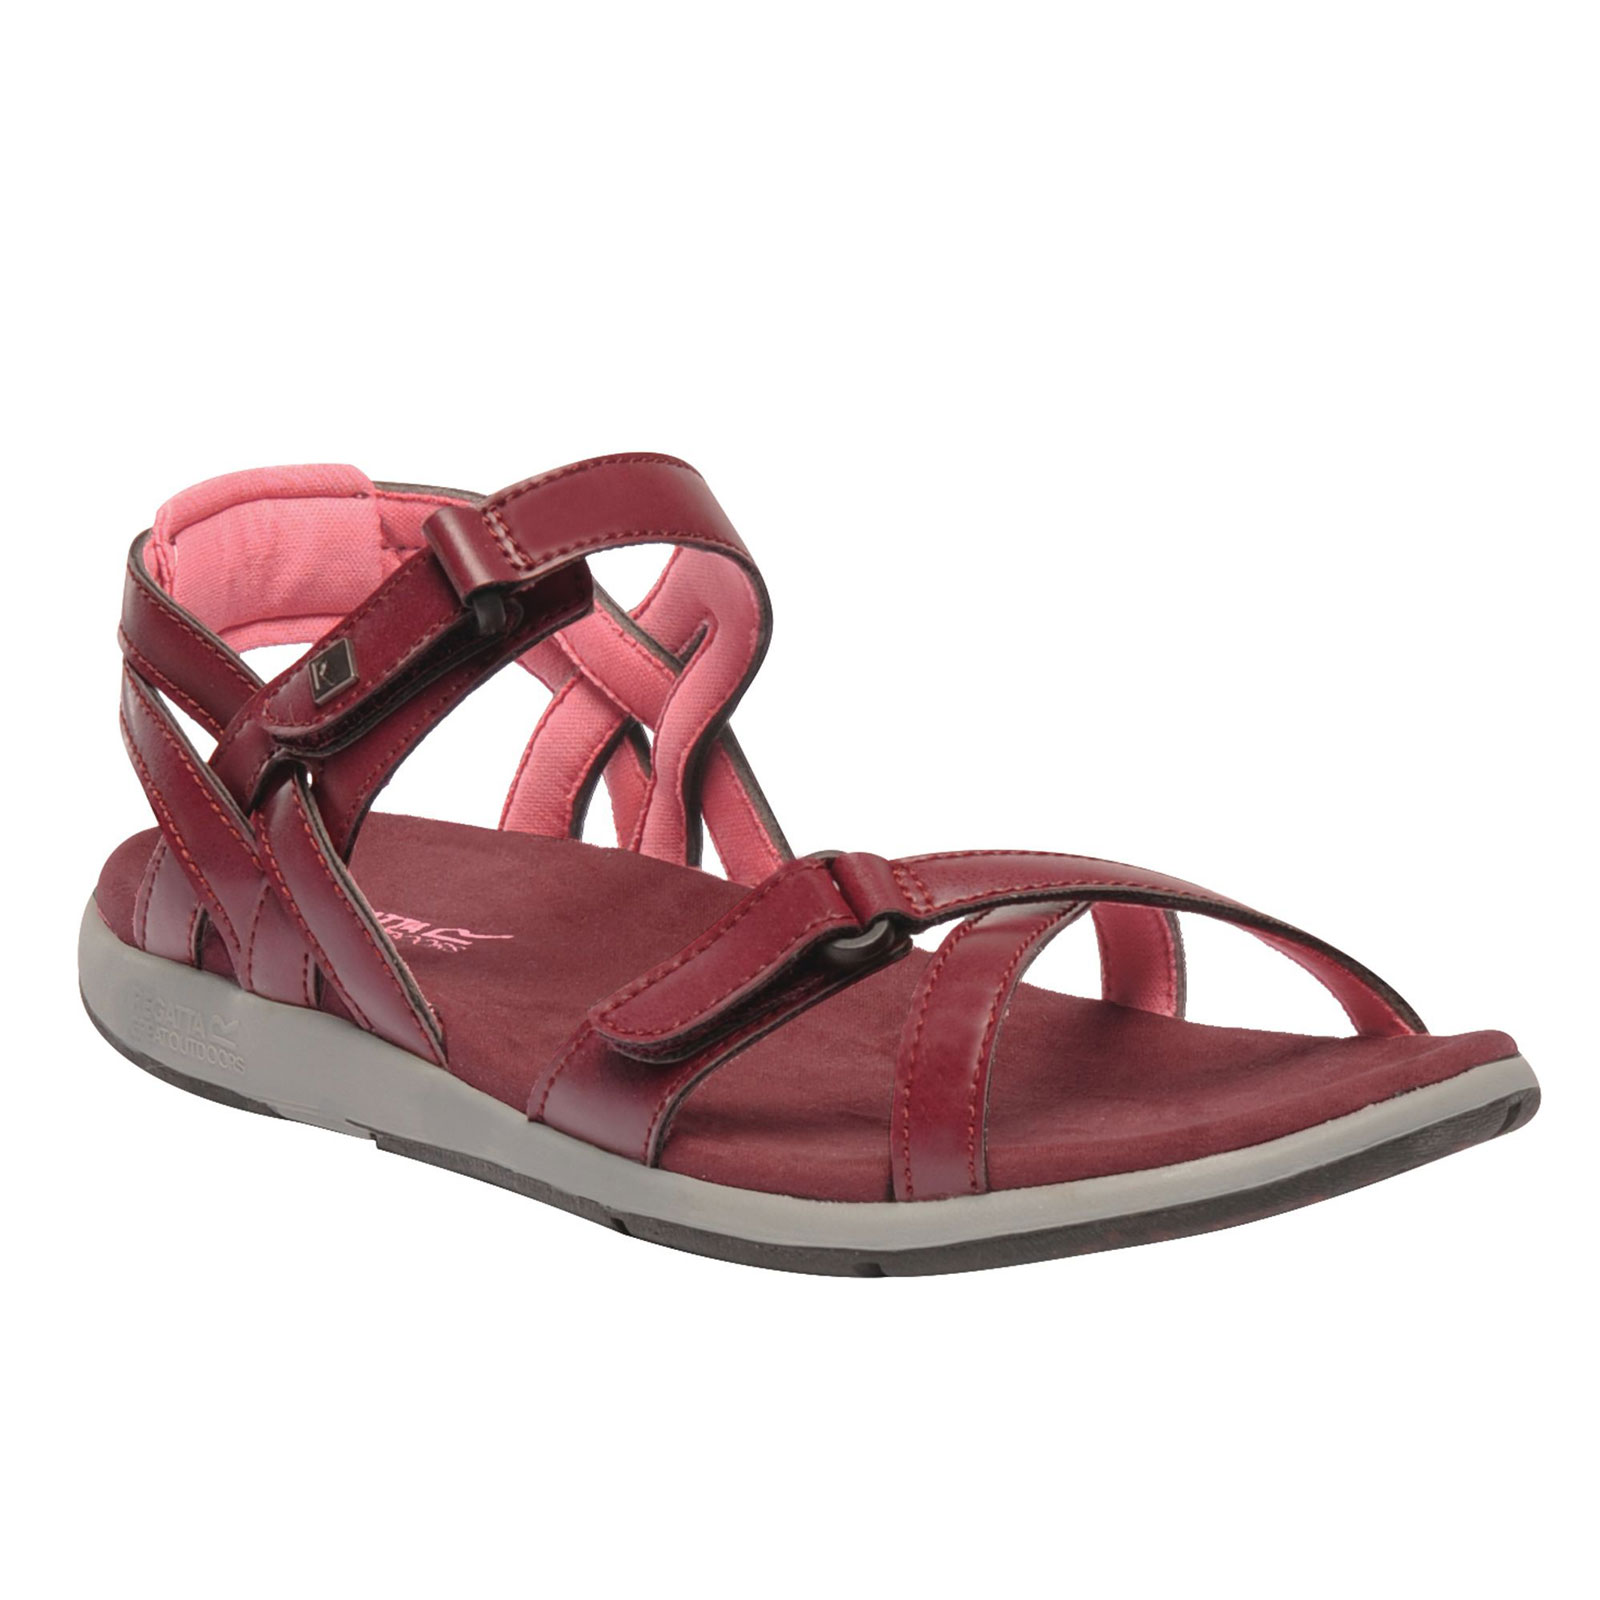 Regatta Walking Ladies Santa Cruz Walking Regatta Sandal  40 e1966a